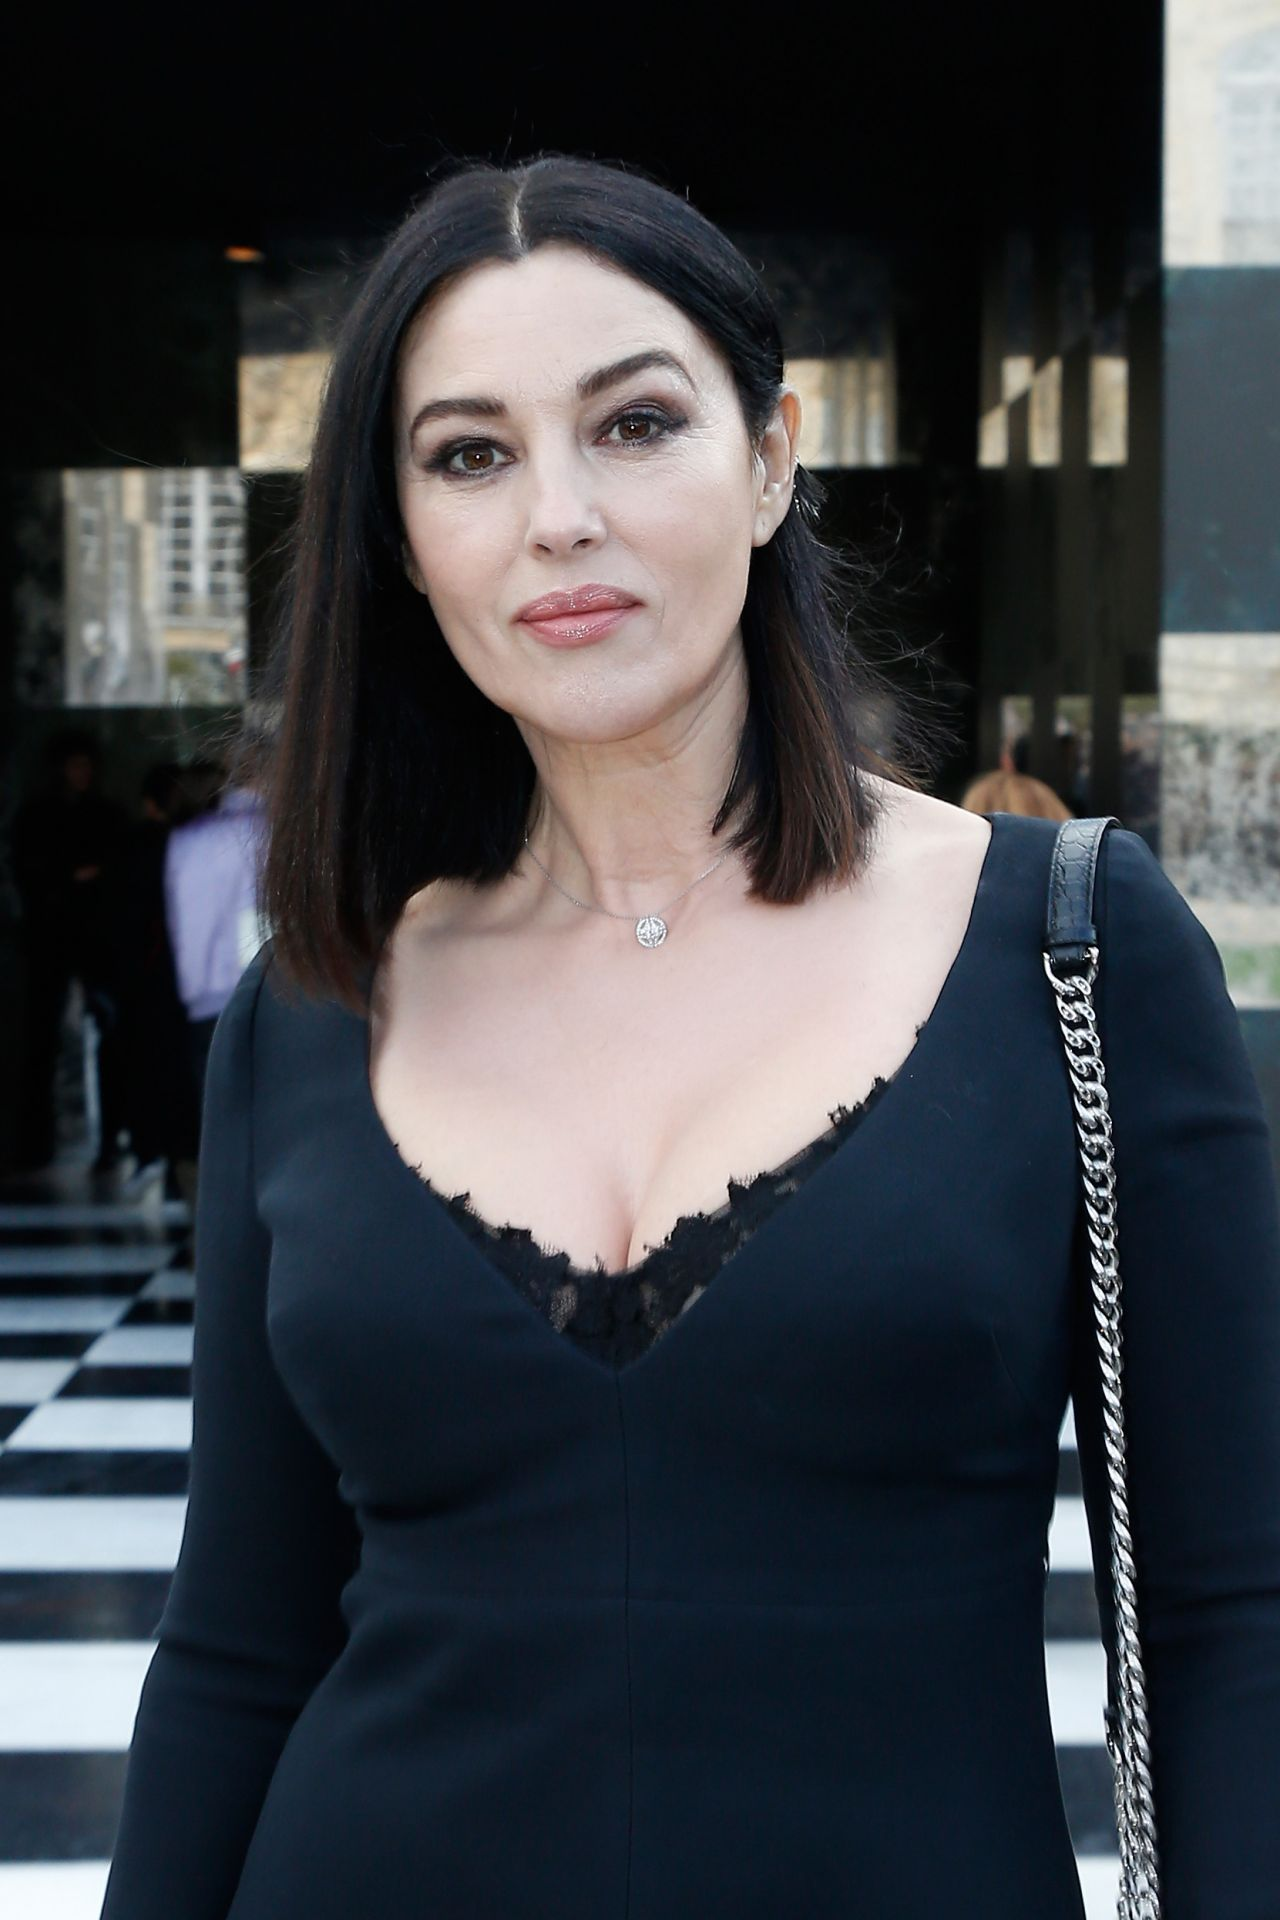 Monica Bellucci Latest Photos - CelebMafia Monica Bellucci